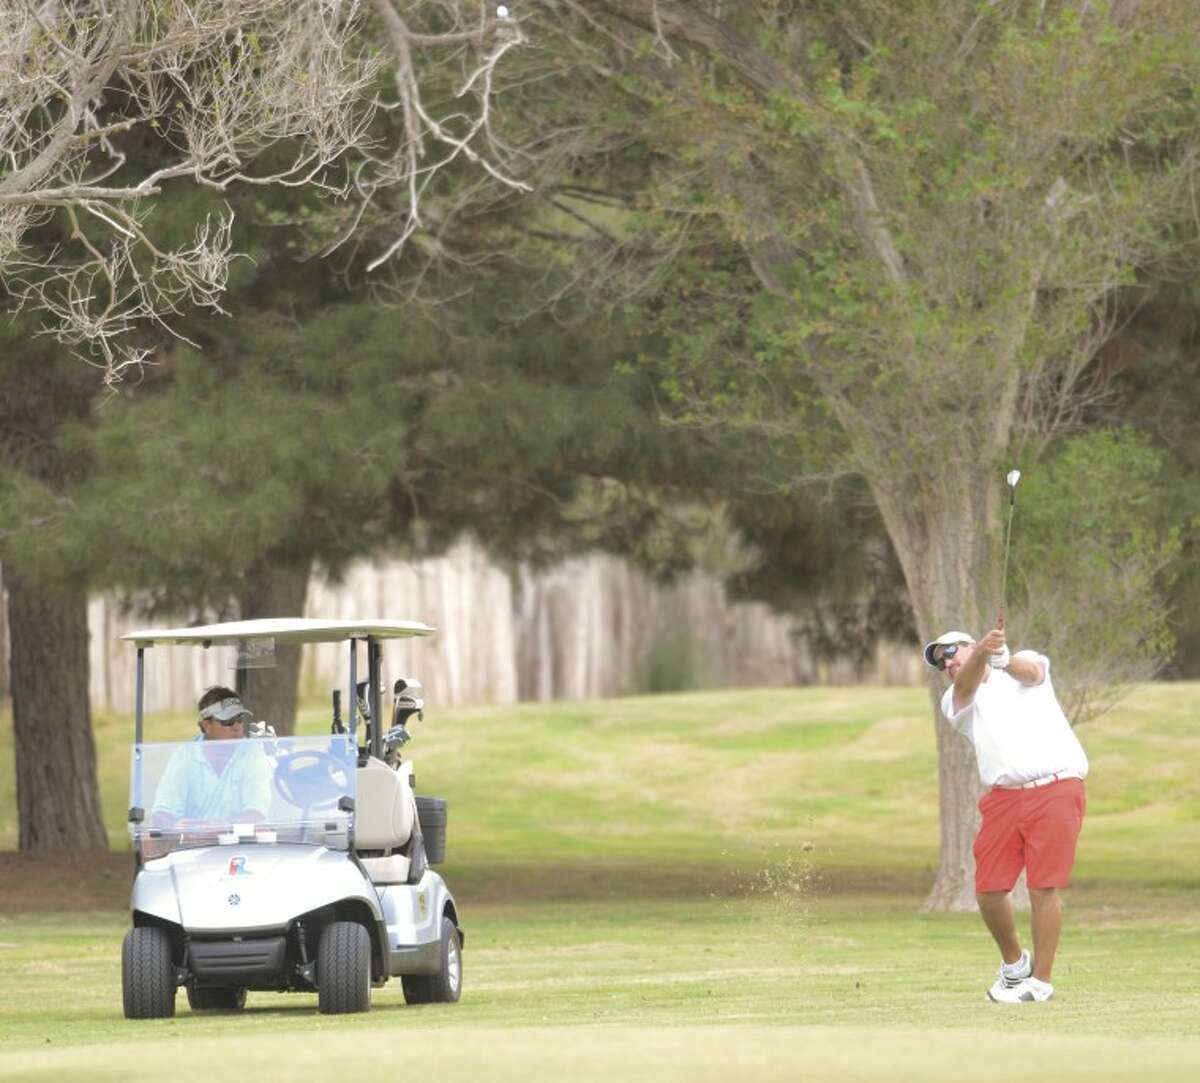 Ken Livingston watch as Mark Terry chips his ball onto No. 2 green during the first round of the Ranchland Hills Blowout in 2012. Cindeka Nealy/Reporter-Telegram